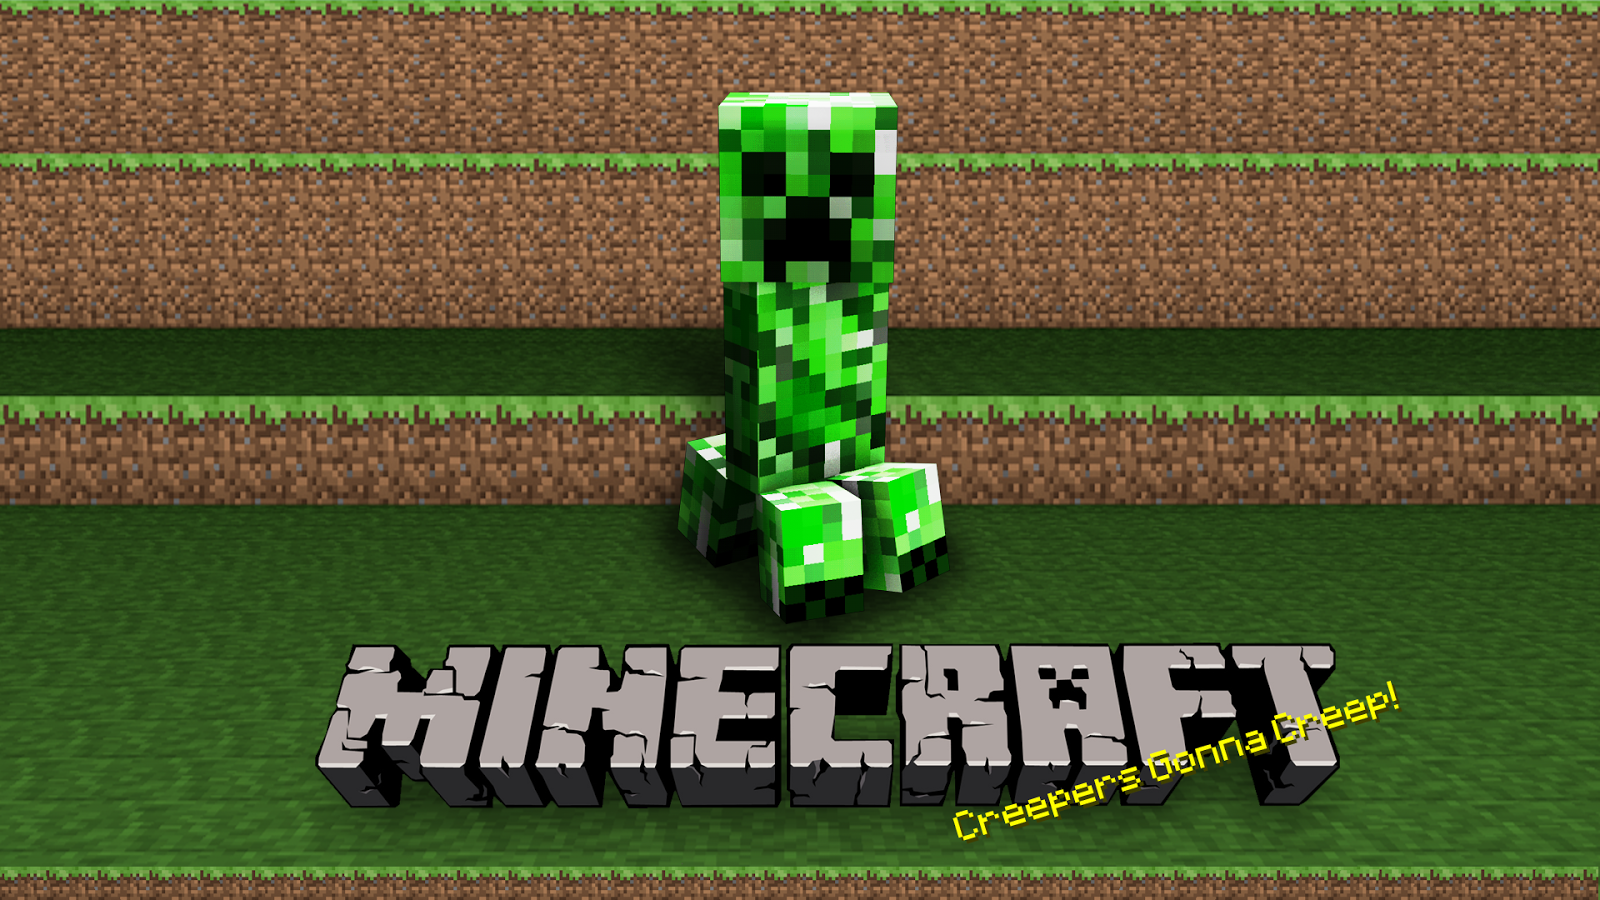 Minecraft For Free Play Classic Minecraft For Free Minecraft Wallpaper Minecraft Images Minecraft Pictures